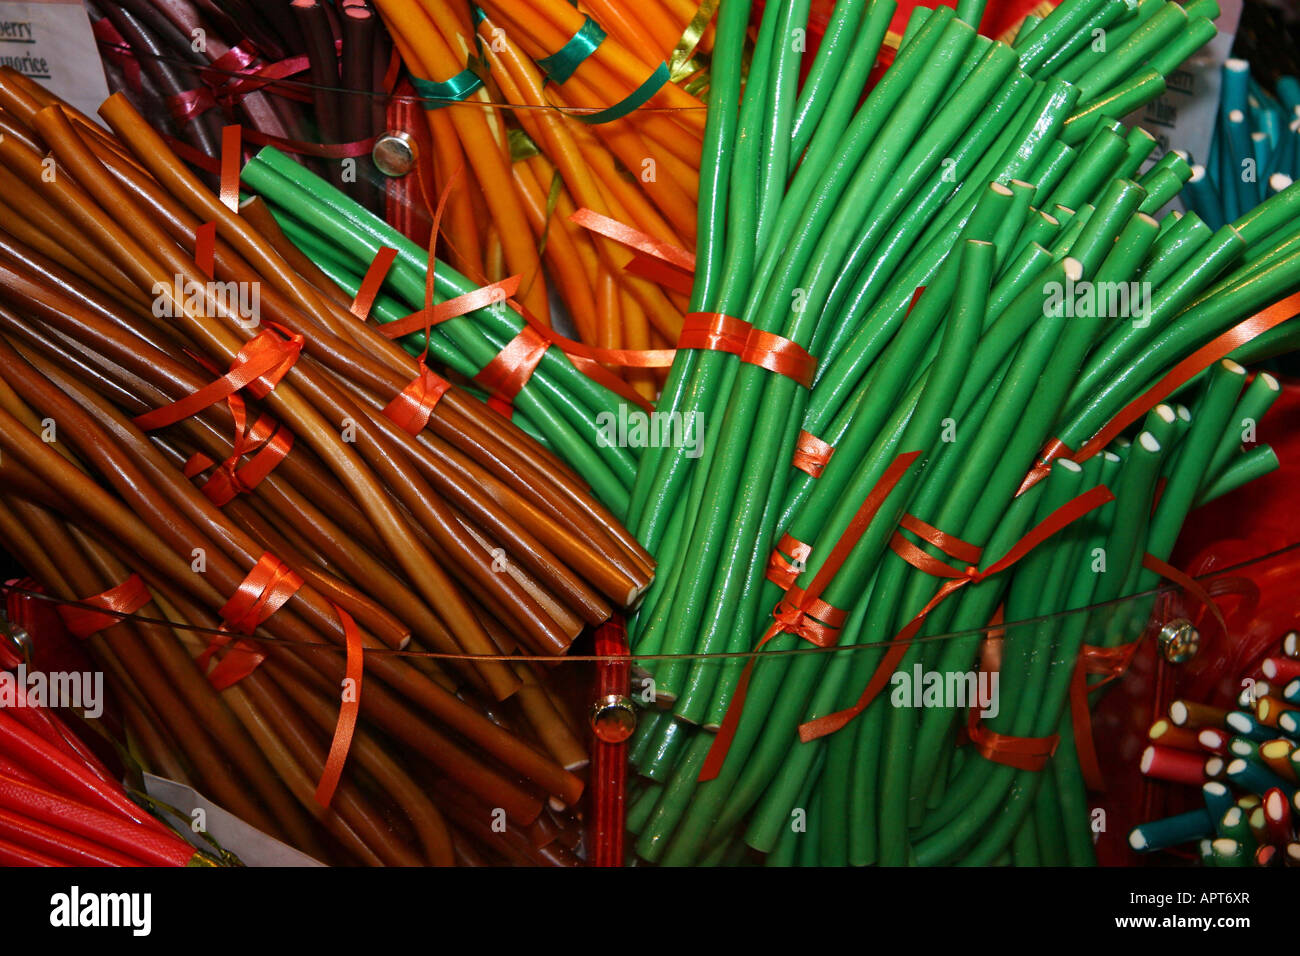 Green brown and orange sticks of Liquorice, all heaped together, tied with pieces of ribbon. candy Stock Photo